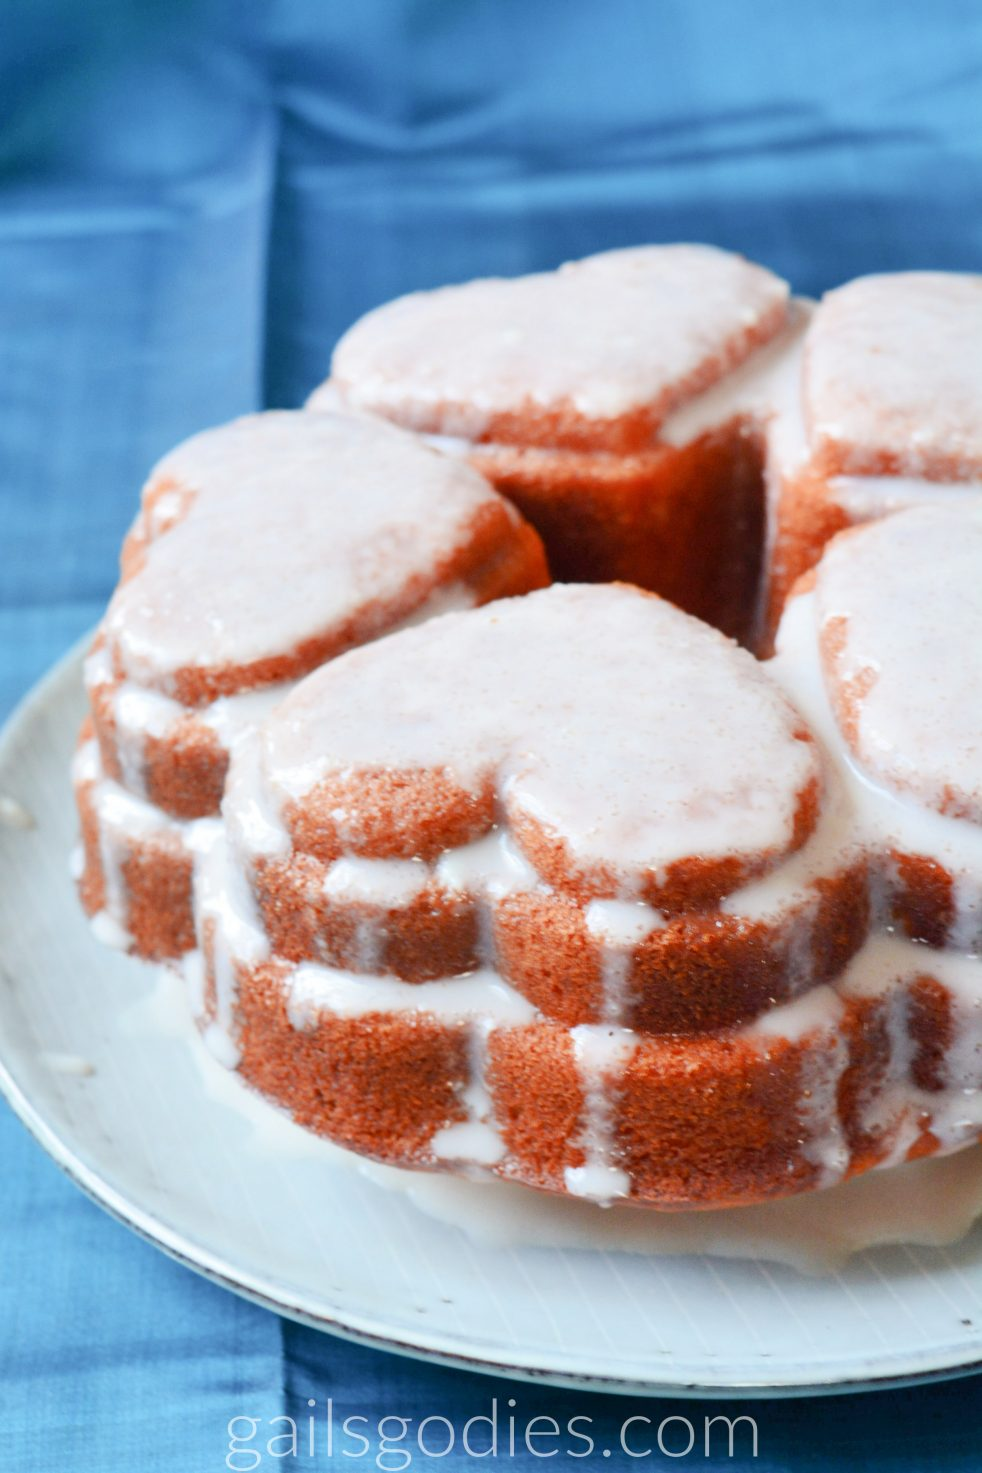 This is the left side of a champagne bundt cake. The bundt cake is five hearts. Three hearts are fully visible and the other two are only partially visible. The cake is glazed with a light pink glaze that drizzles down the sides.